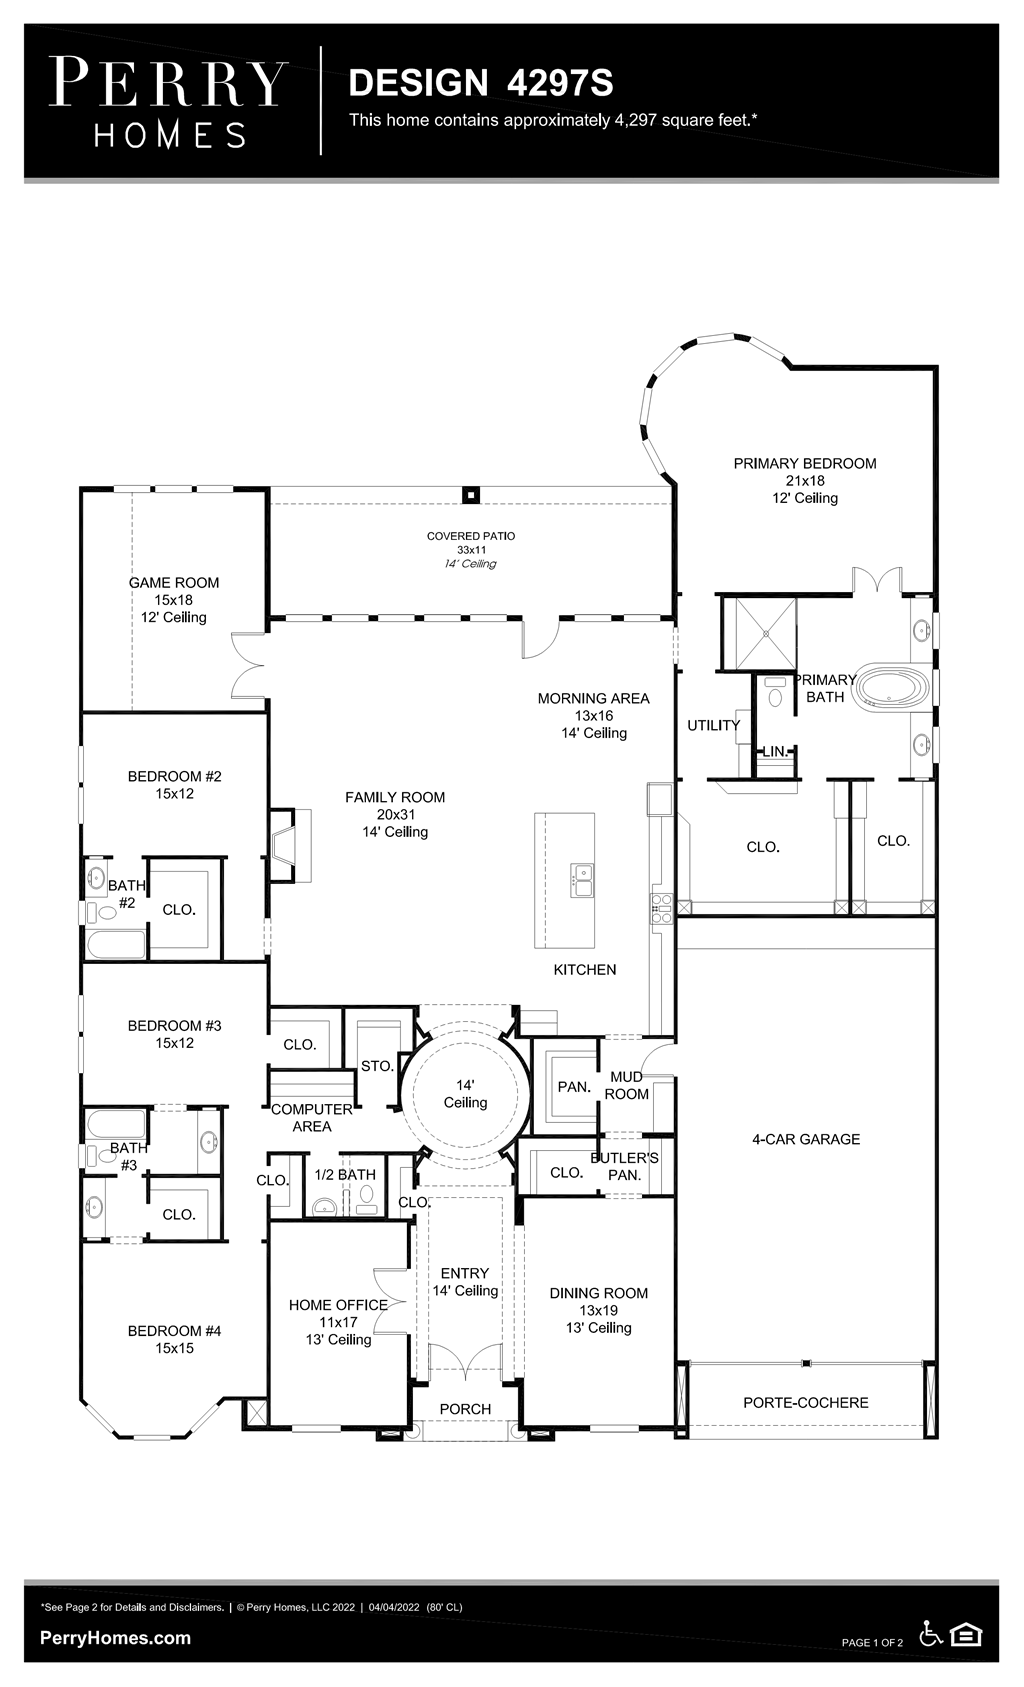 Floor Plan for 4297S